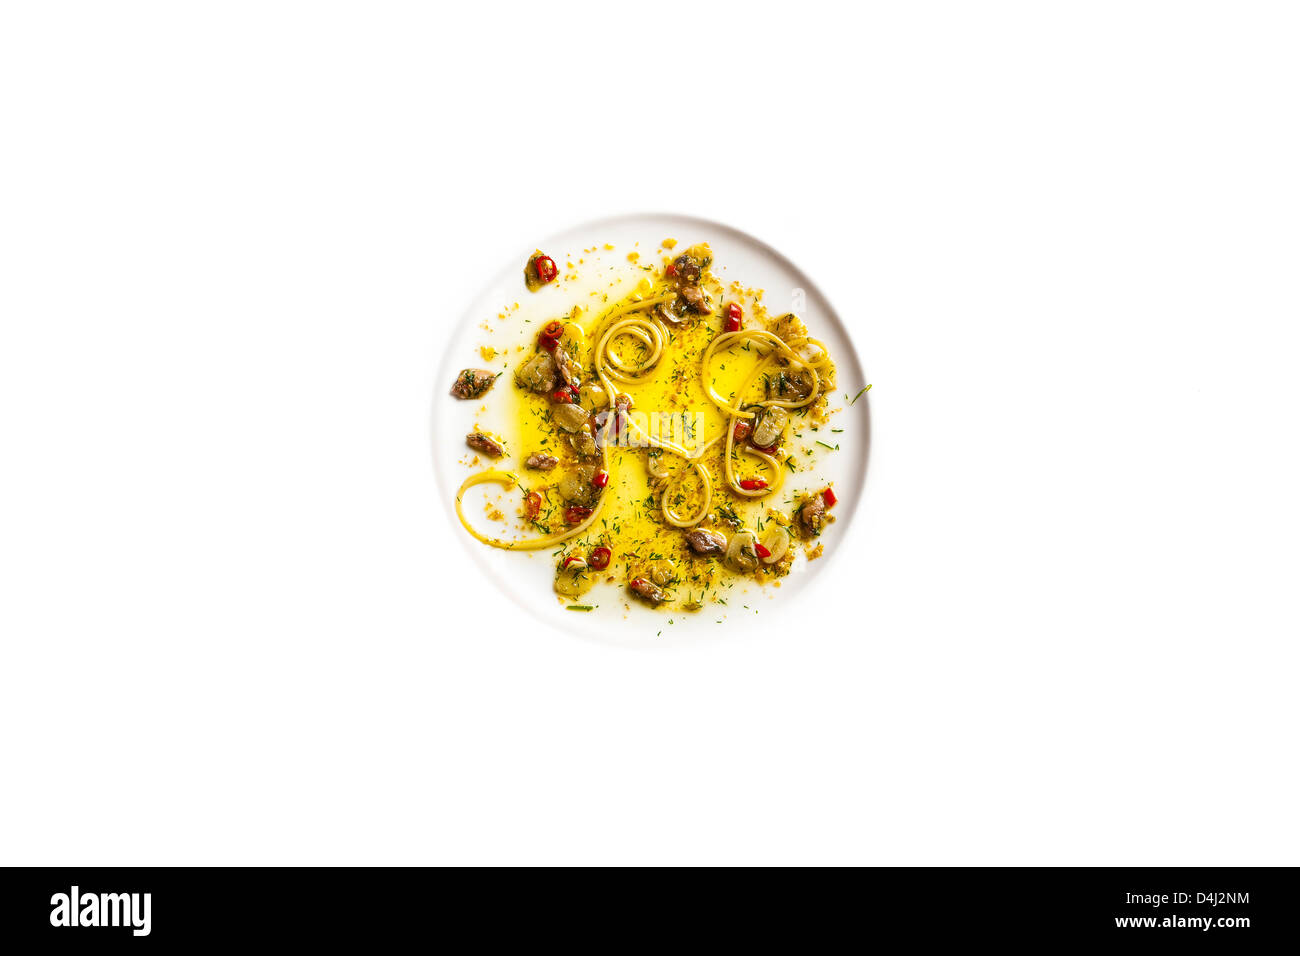 Spaghetti with Anchovies - Stock Image